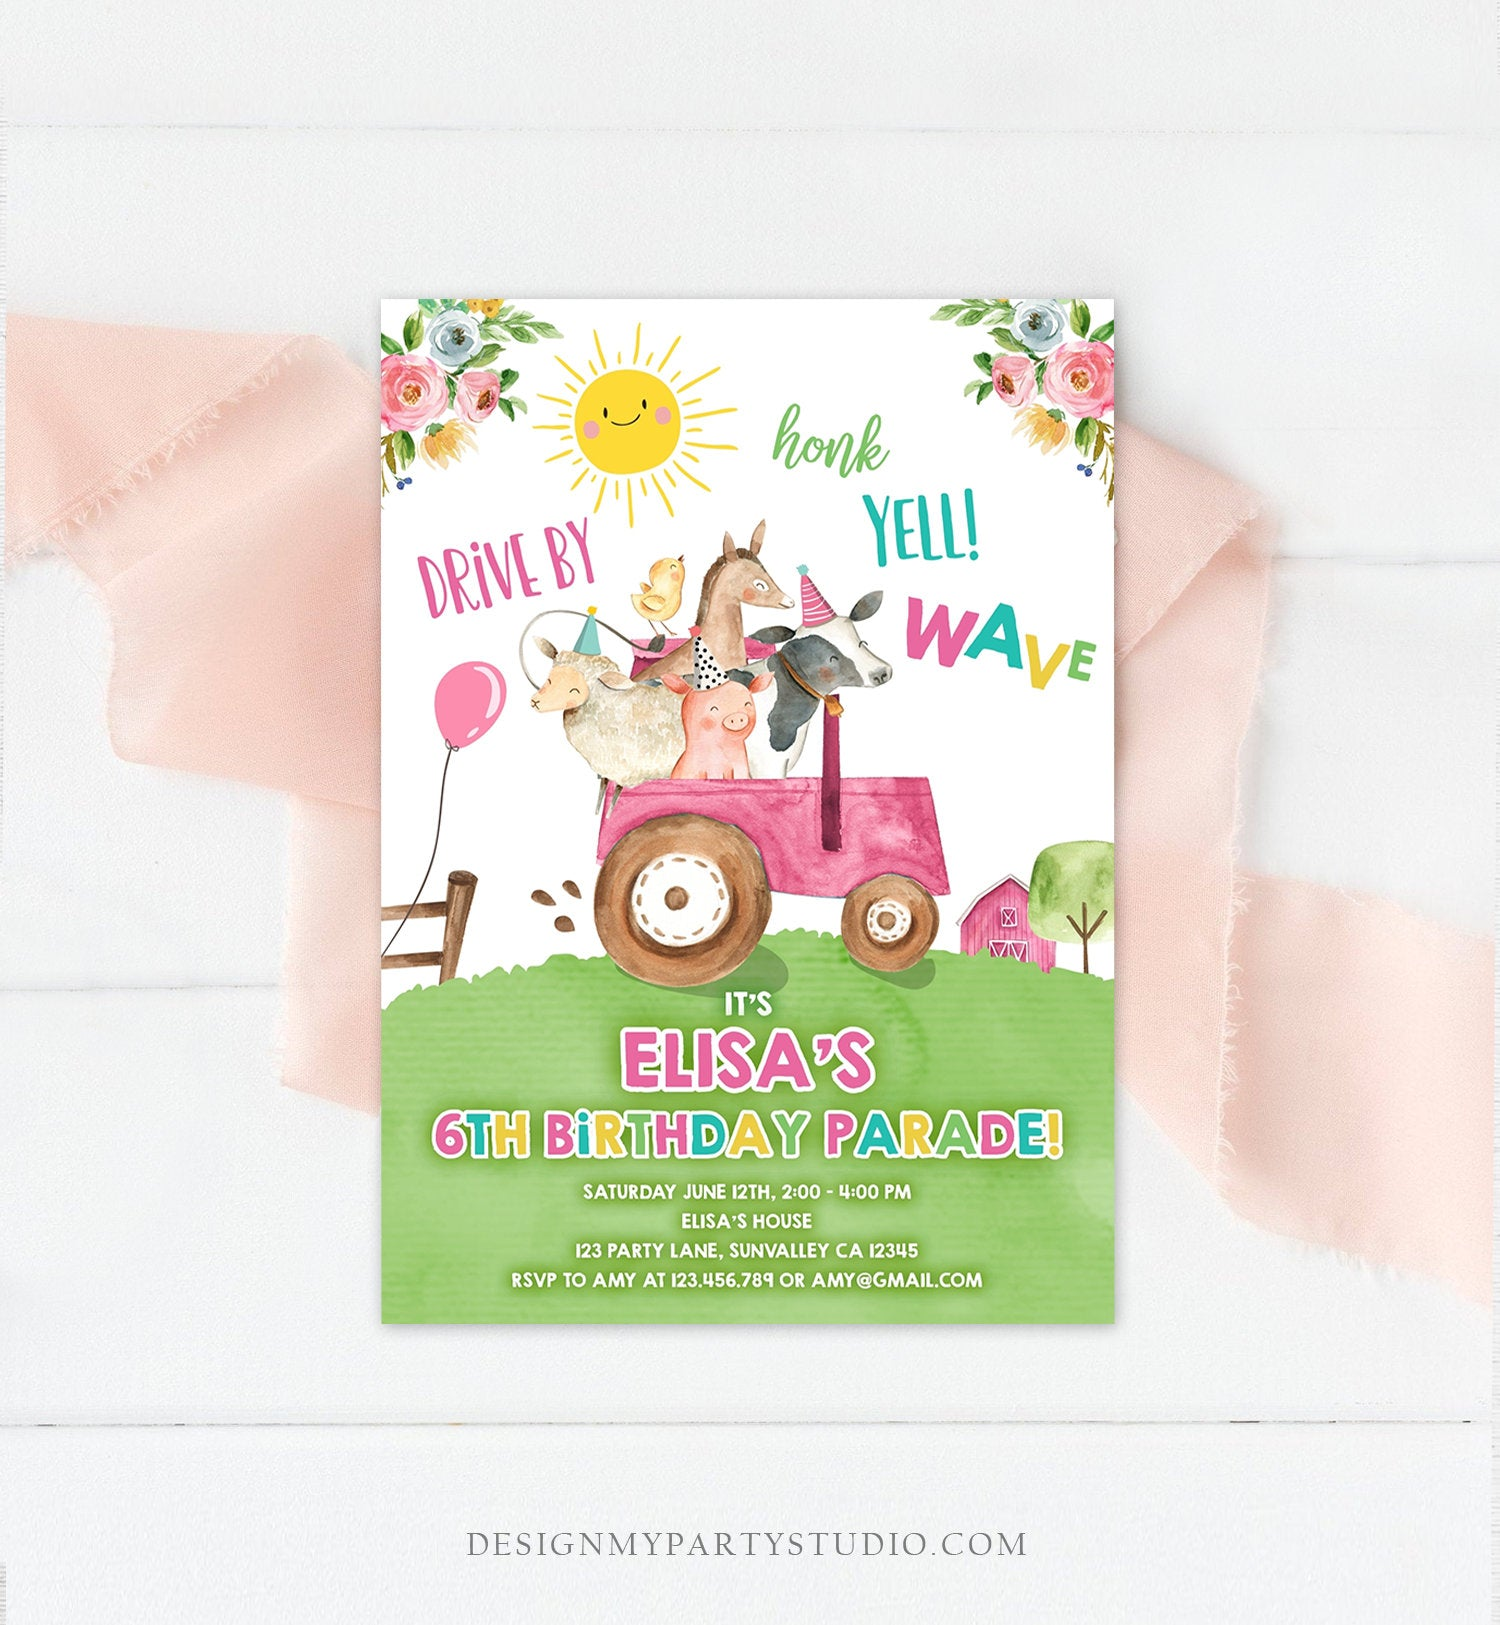 Editable Drive By Birthday Parade Invitation Farm Animals Virtual Party Invite Honk Wave Car Girl Pink Party Animals Digital Corjl 0155